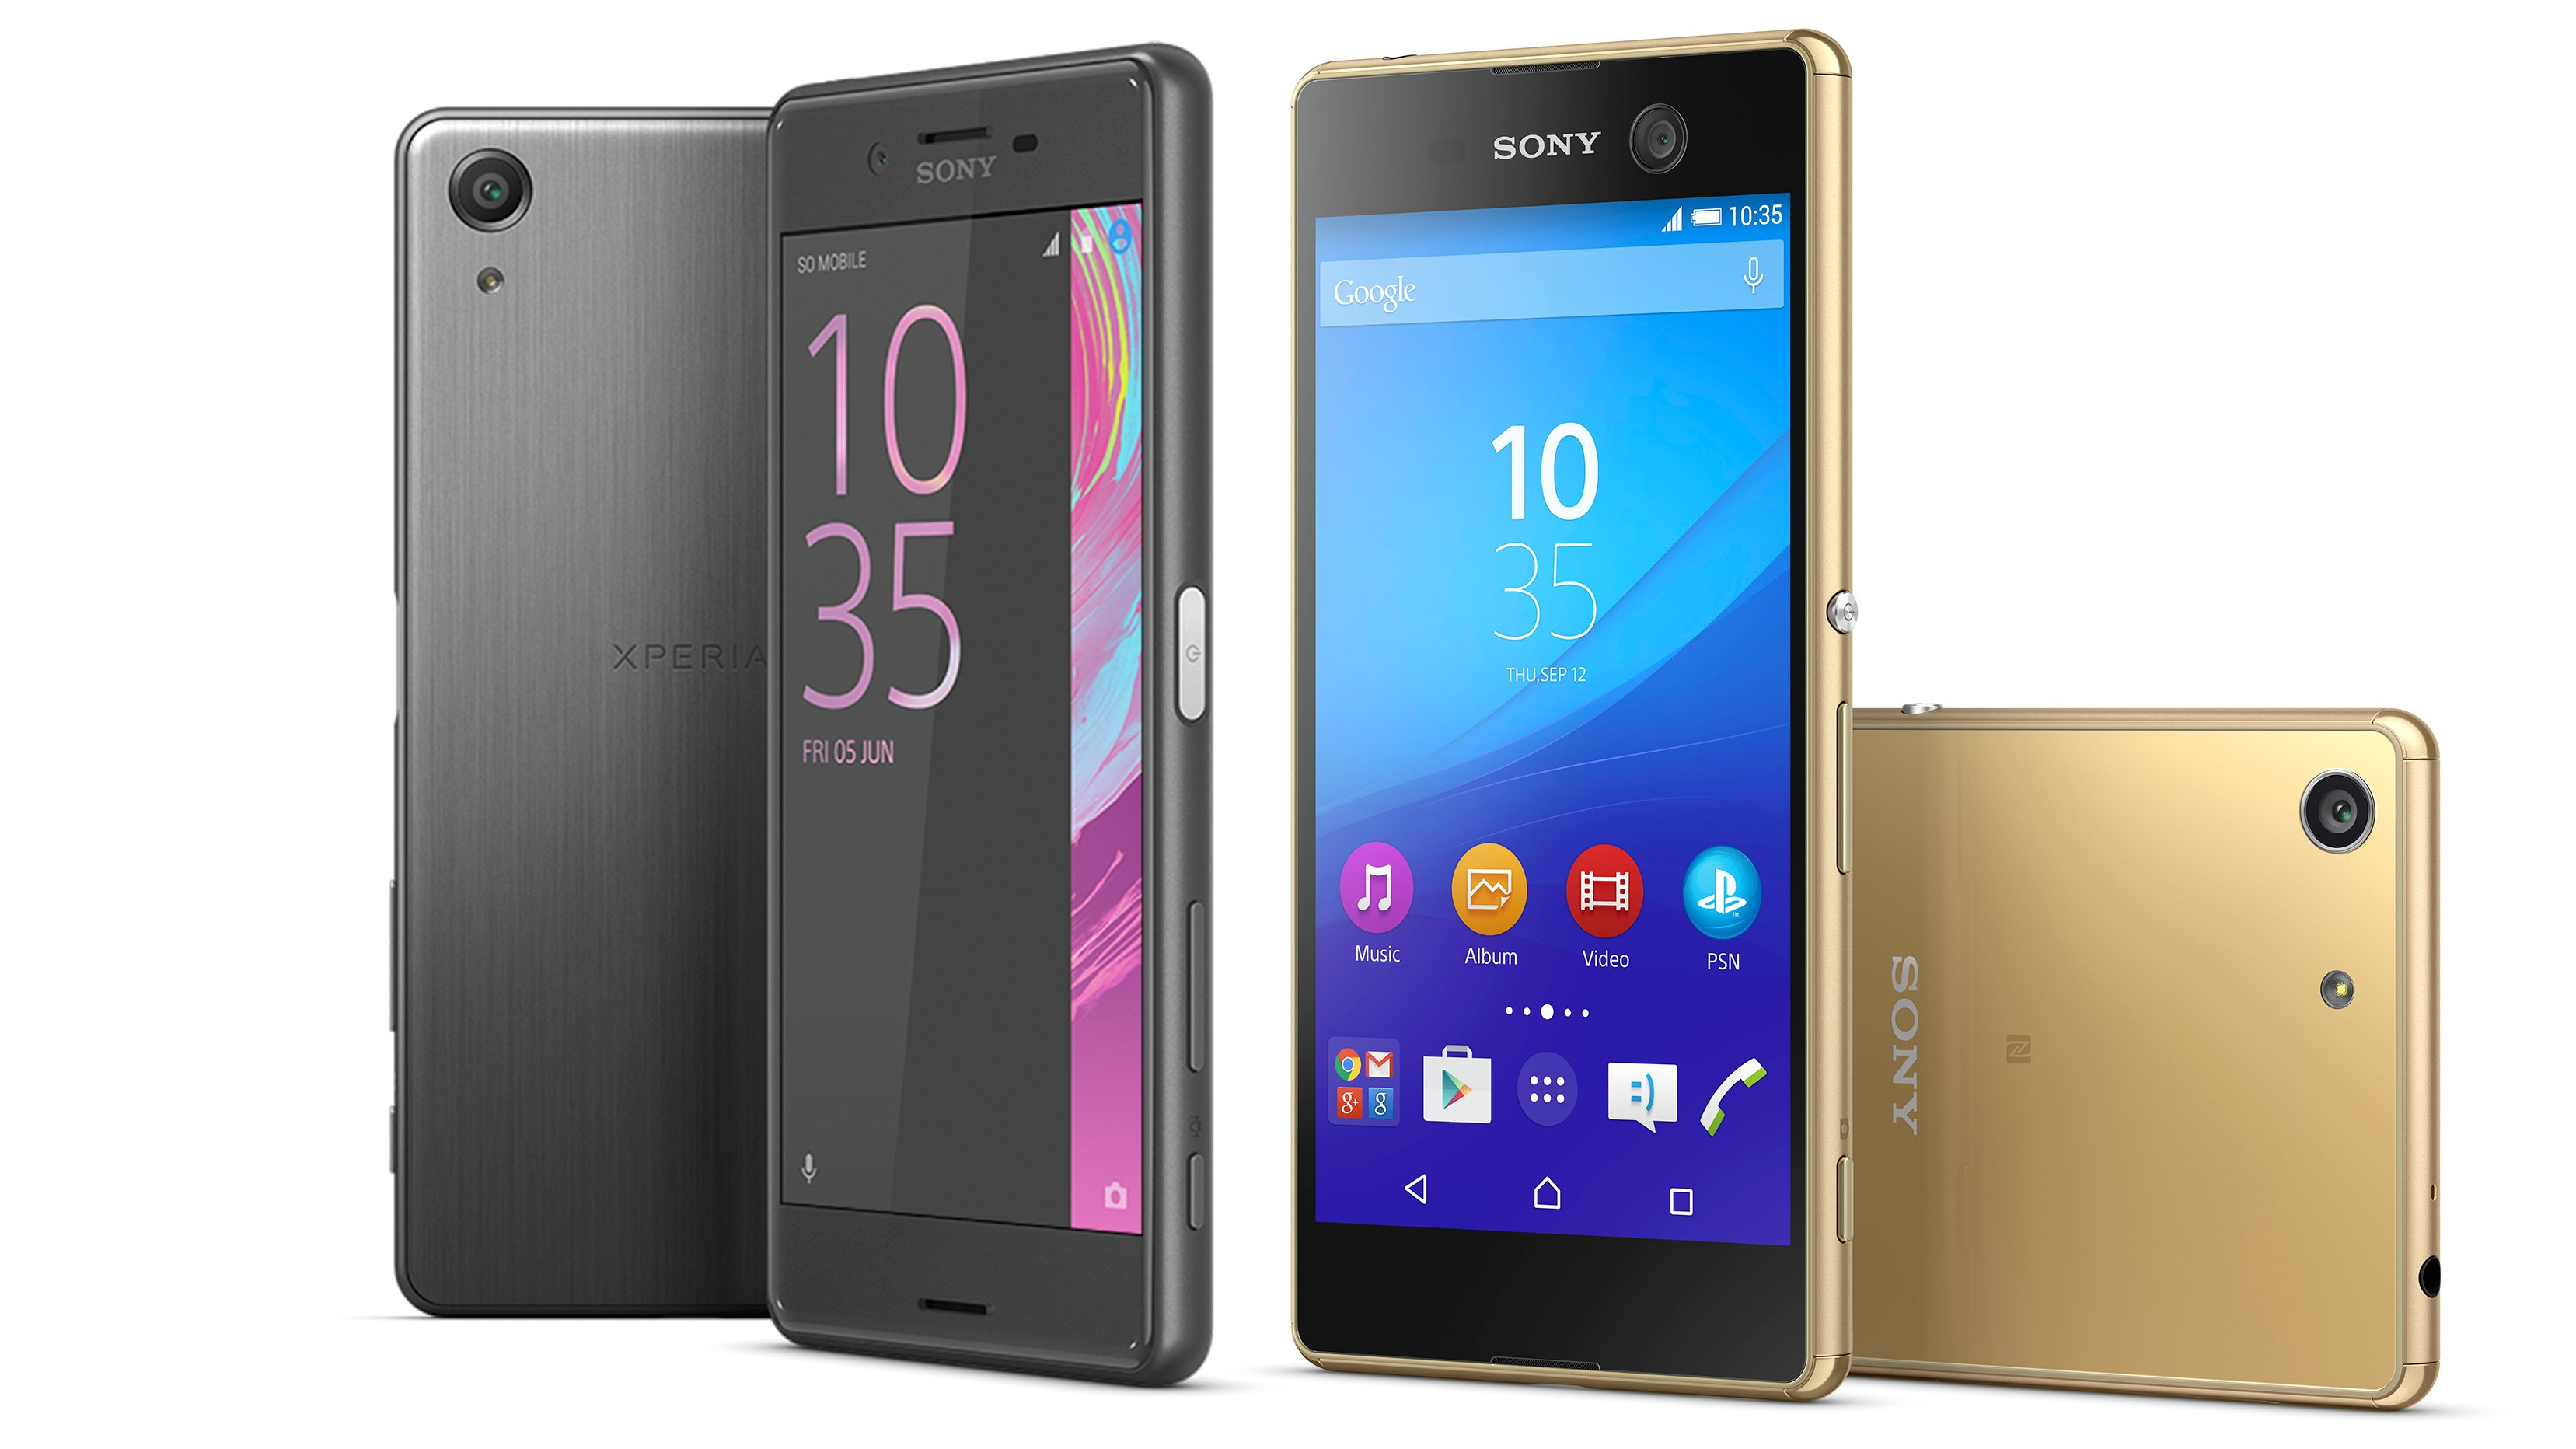 sony xperia m5 vs sony xperia x disputa en la gama media androidpit. Black Bedroom Furniture Sets. Home Design Ideas